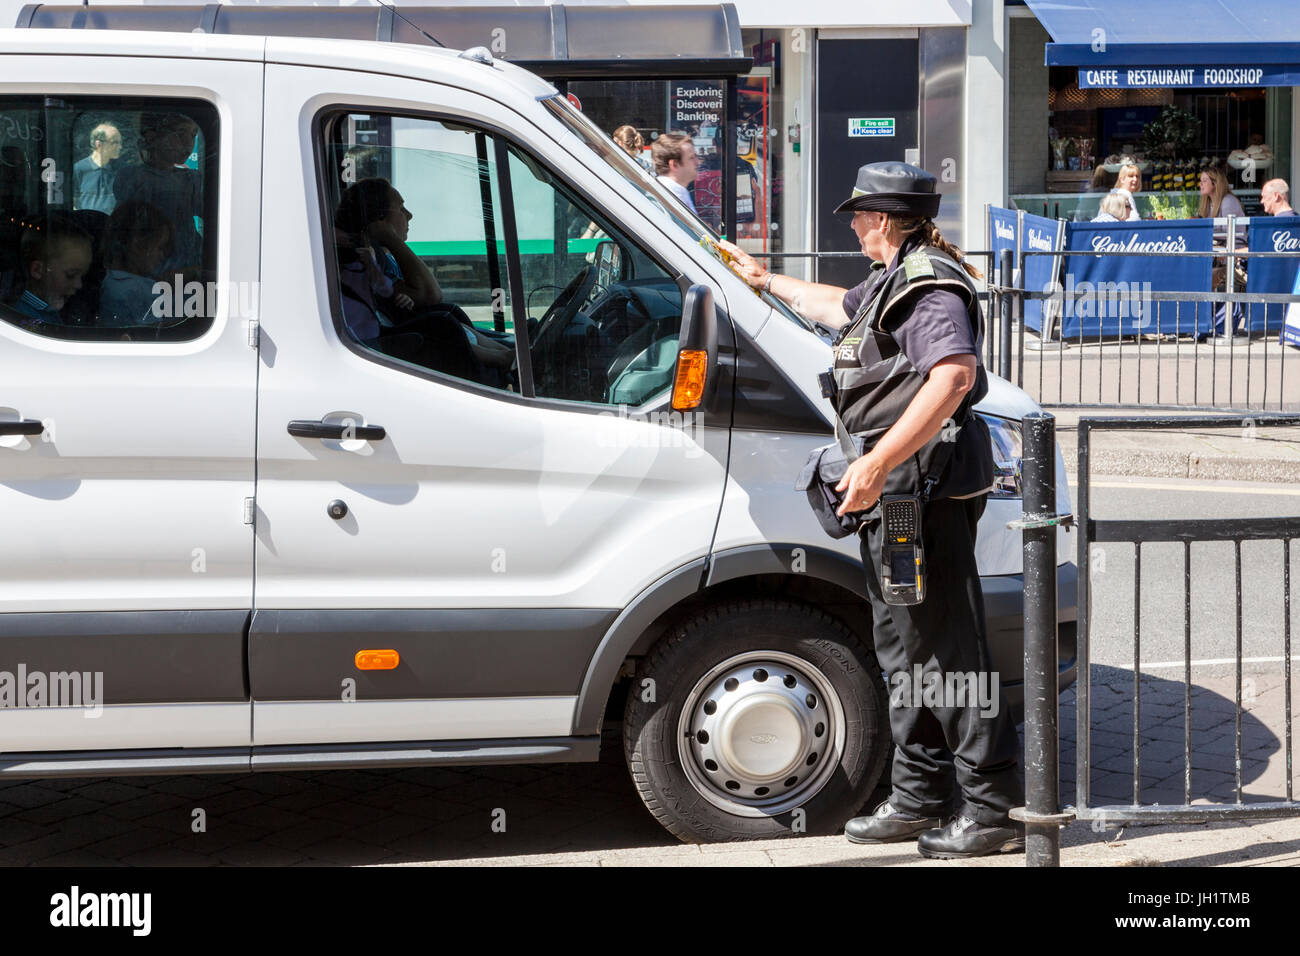 Traffic warden issuing a parking ticket and attaching to a vehicle for illegal parking, West Bridgford, Nottinghamshire, - Stock Image